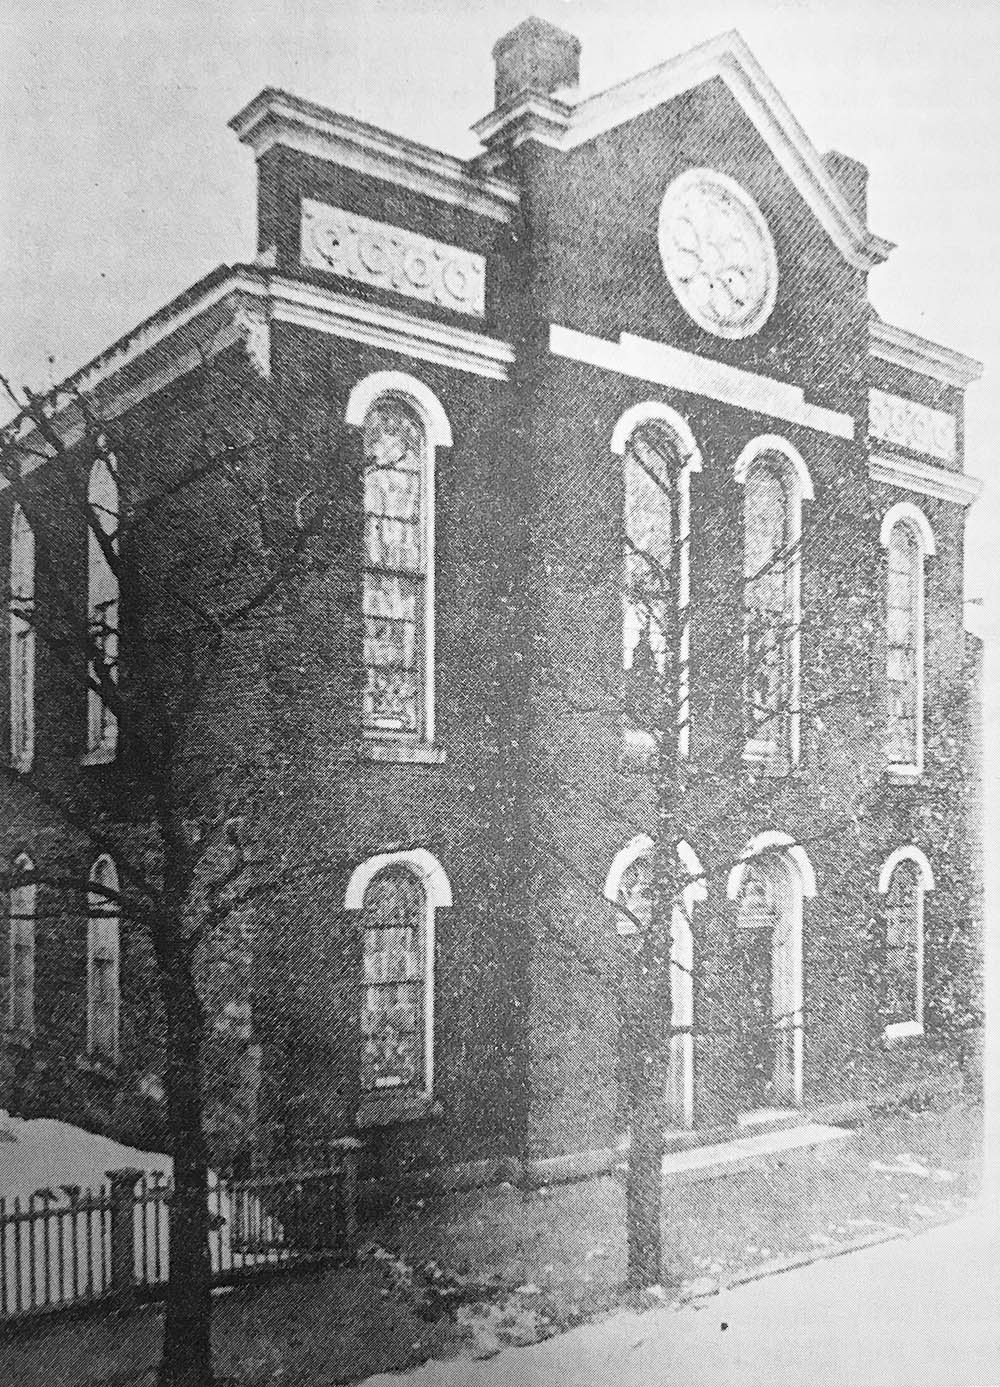 American Primitive Methodist Centennial Tabernacle, built in 1876